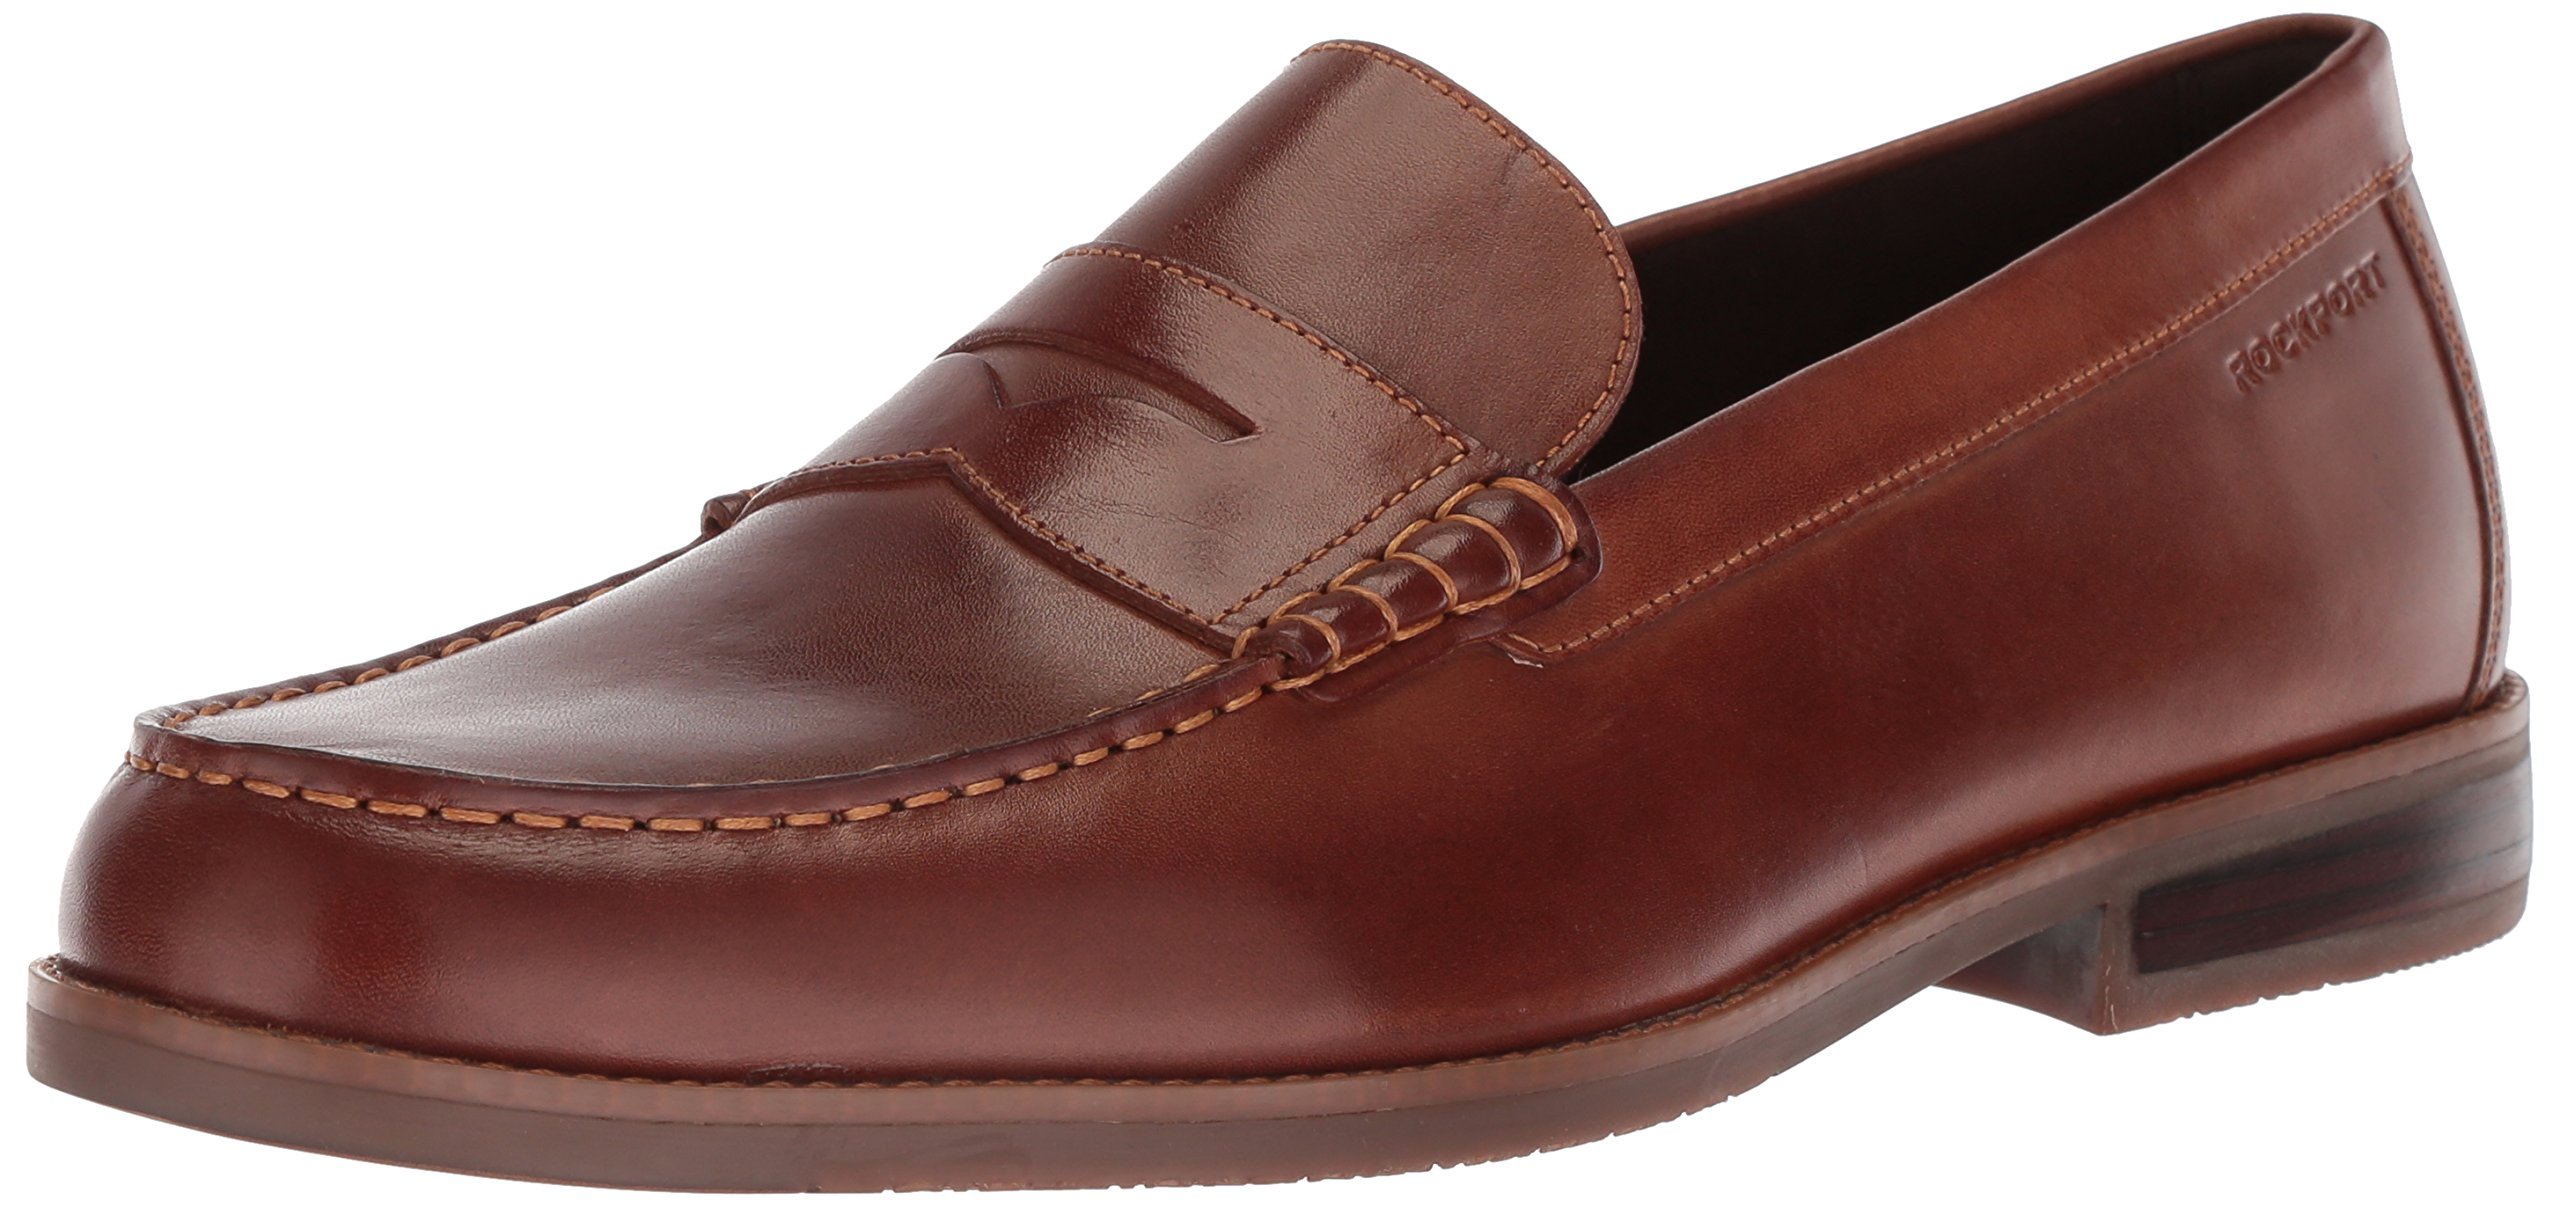 Rockport Men's Cayleb Penny Shoe, Brown, 10.5 M US by Rockport